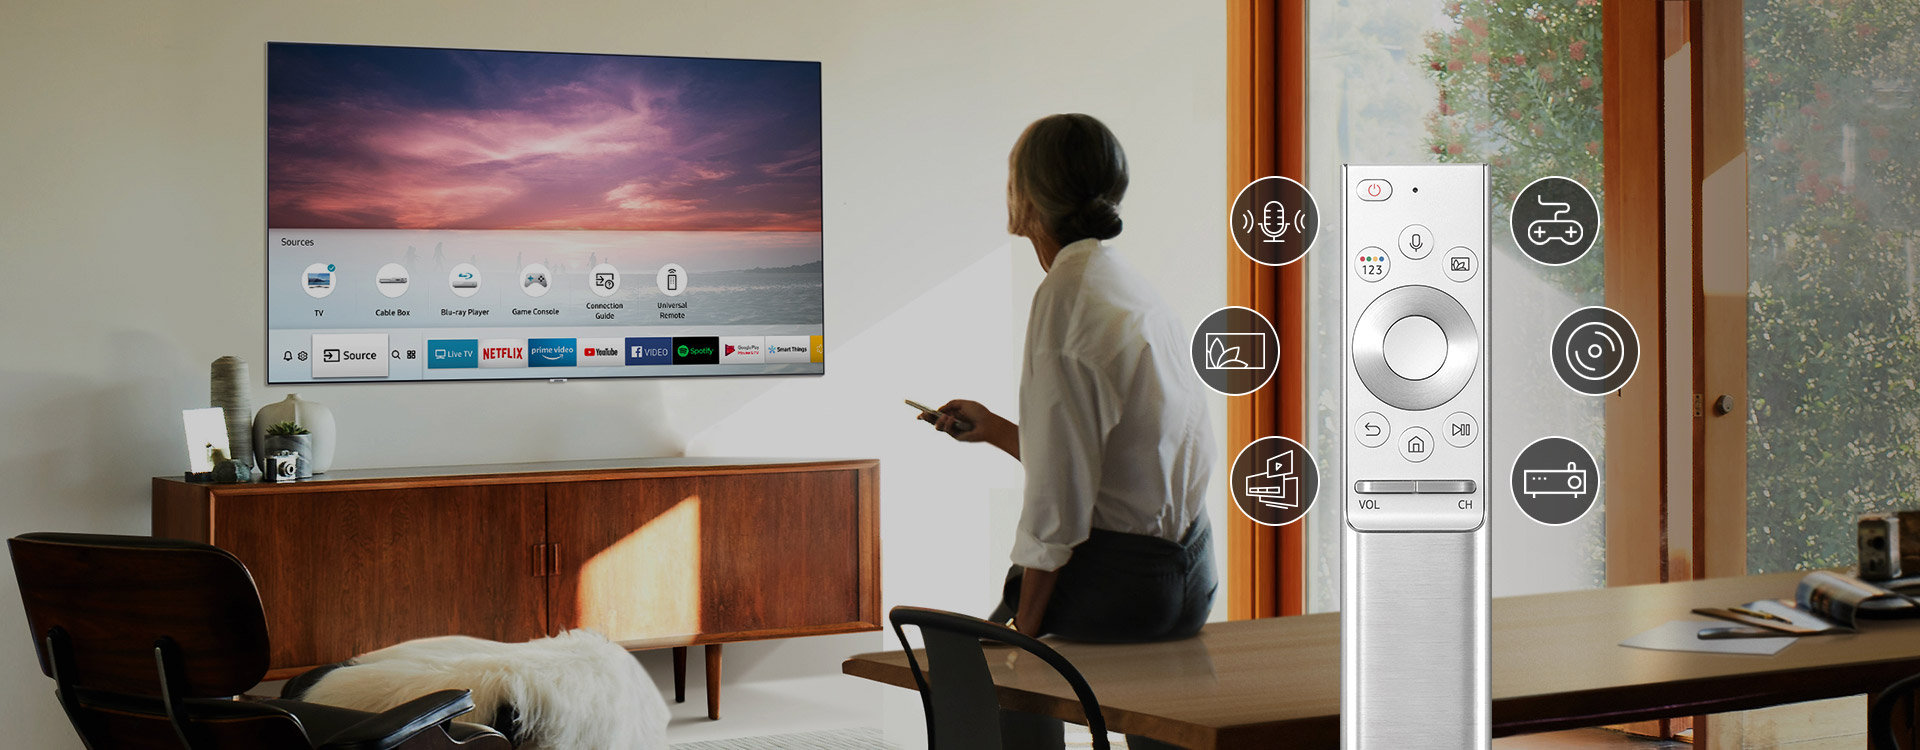 In front of the TV is a woman sitting on the desk with a remote. Next to her is an image of an enlarged remote with 6 icons. The icons represent that remote controls for several devices such as game and DVD players are integrated into one remote control.